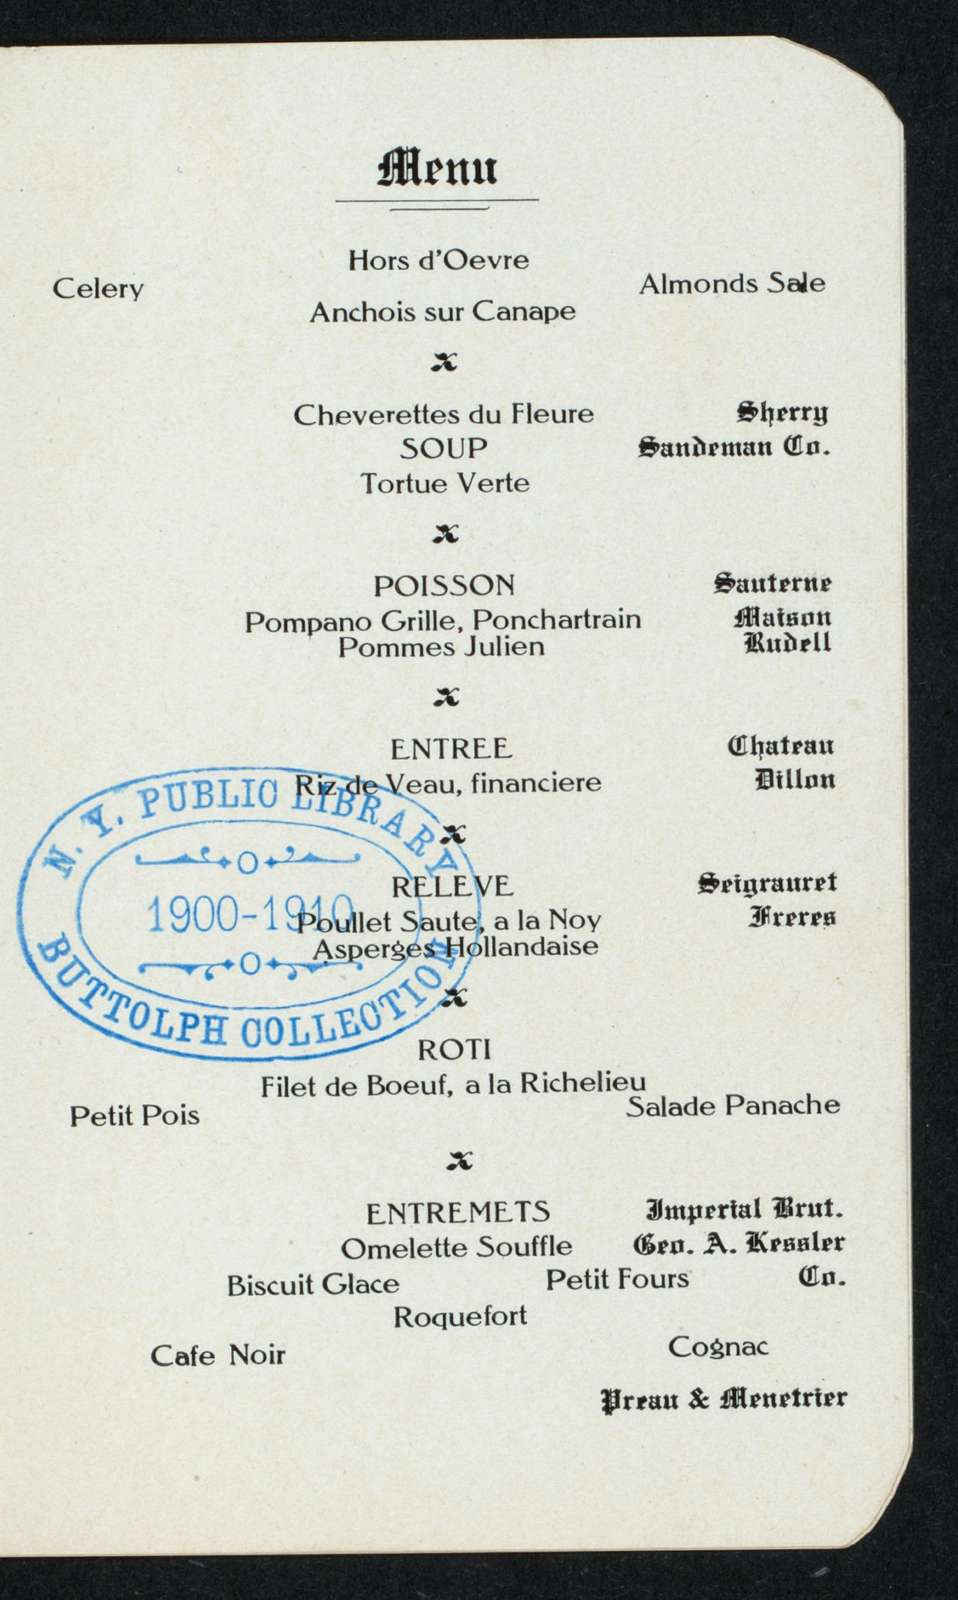 """ANNUAL OUTING [held by] SCHOOL BOARD OF NEW ORLEANS [at] """"NOG'S RESTAURANT, SPANISH FORT, NEW ORLEANS, LA"""" (REST;)"""